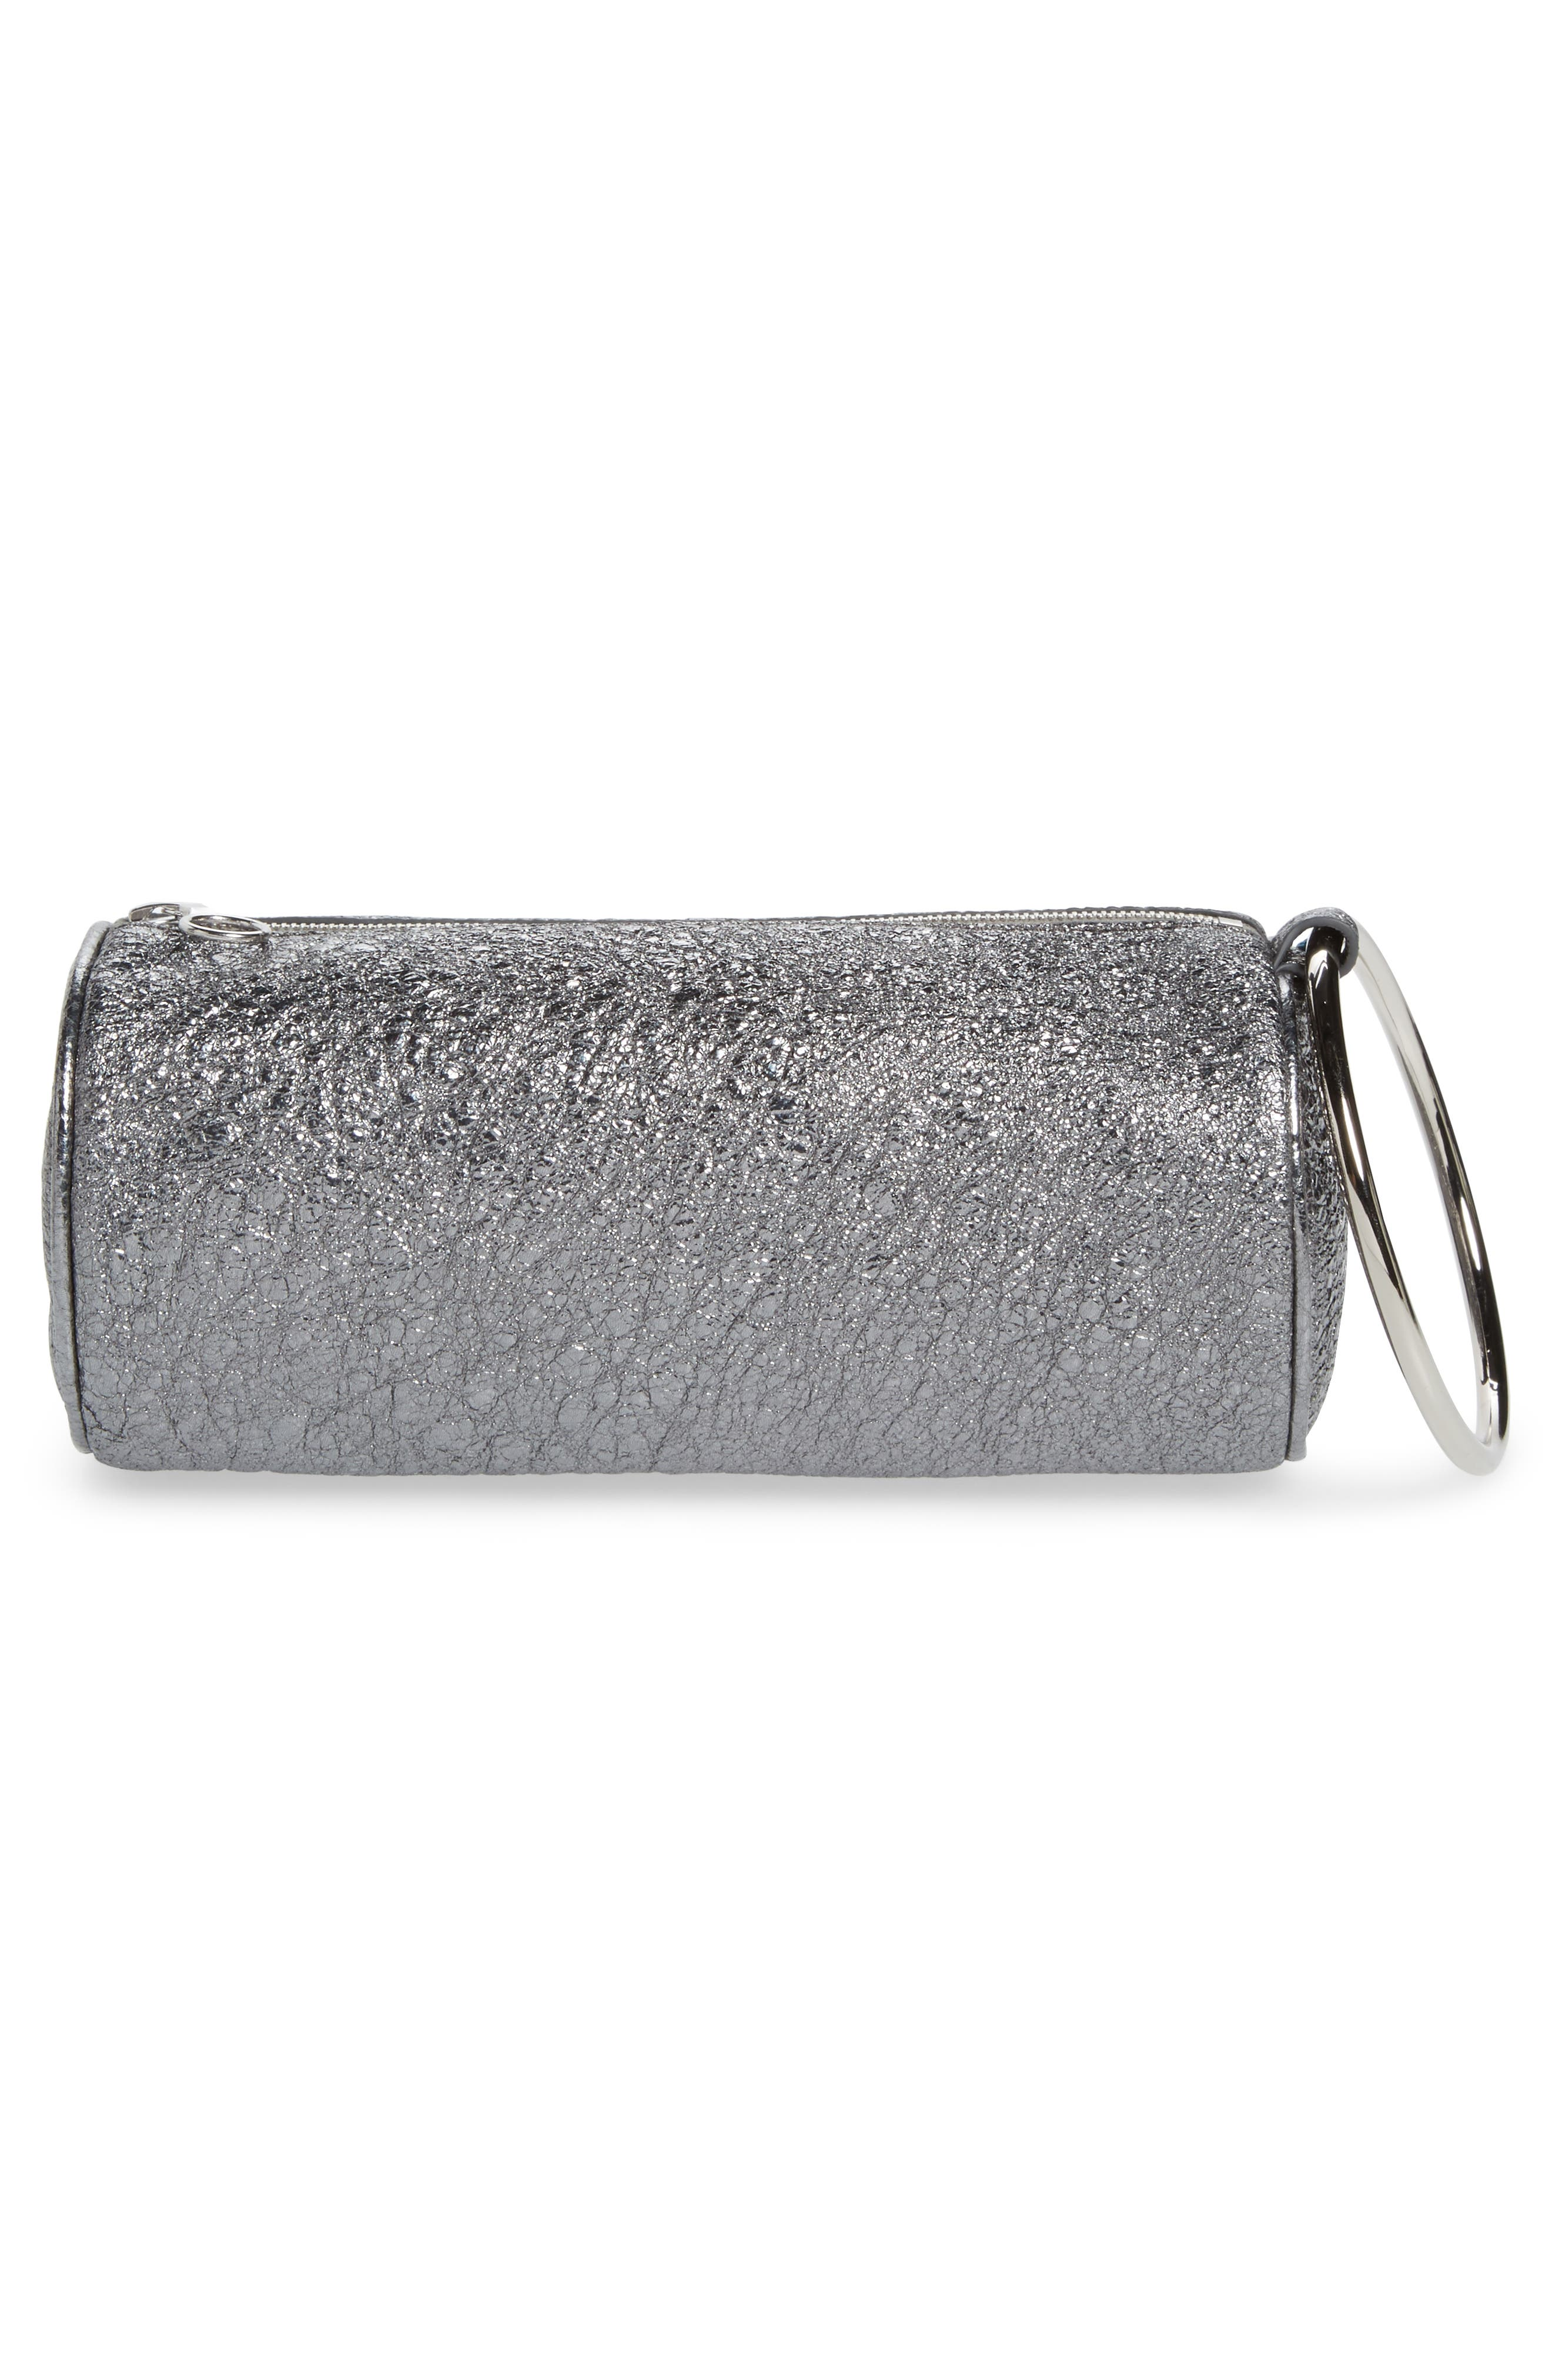 Crinkled Metallic Leather Duffel Wristlet Clutch,                             Alternate thumbnail 3, color,